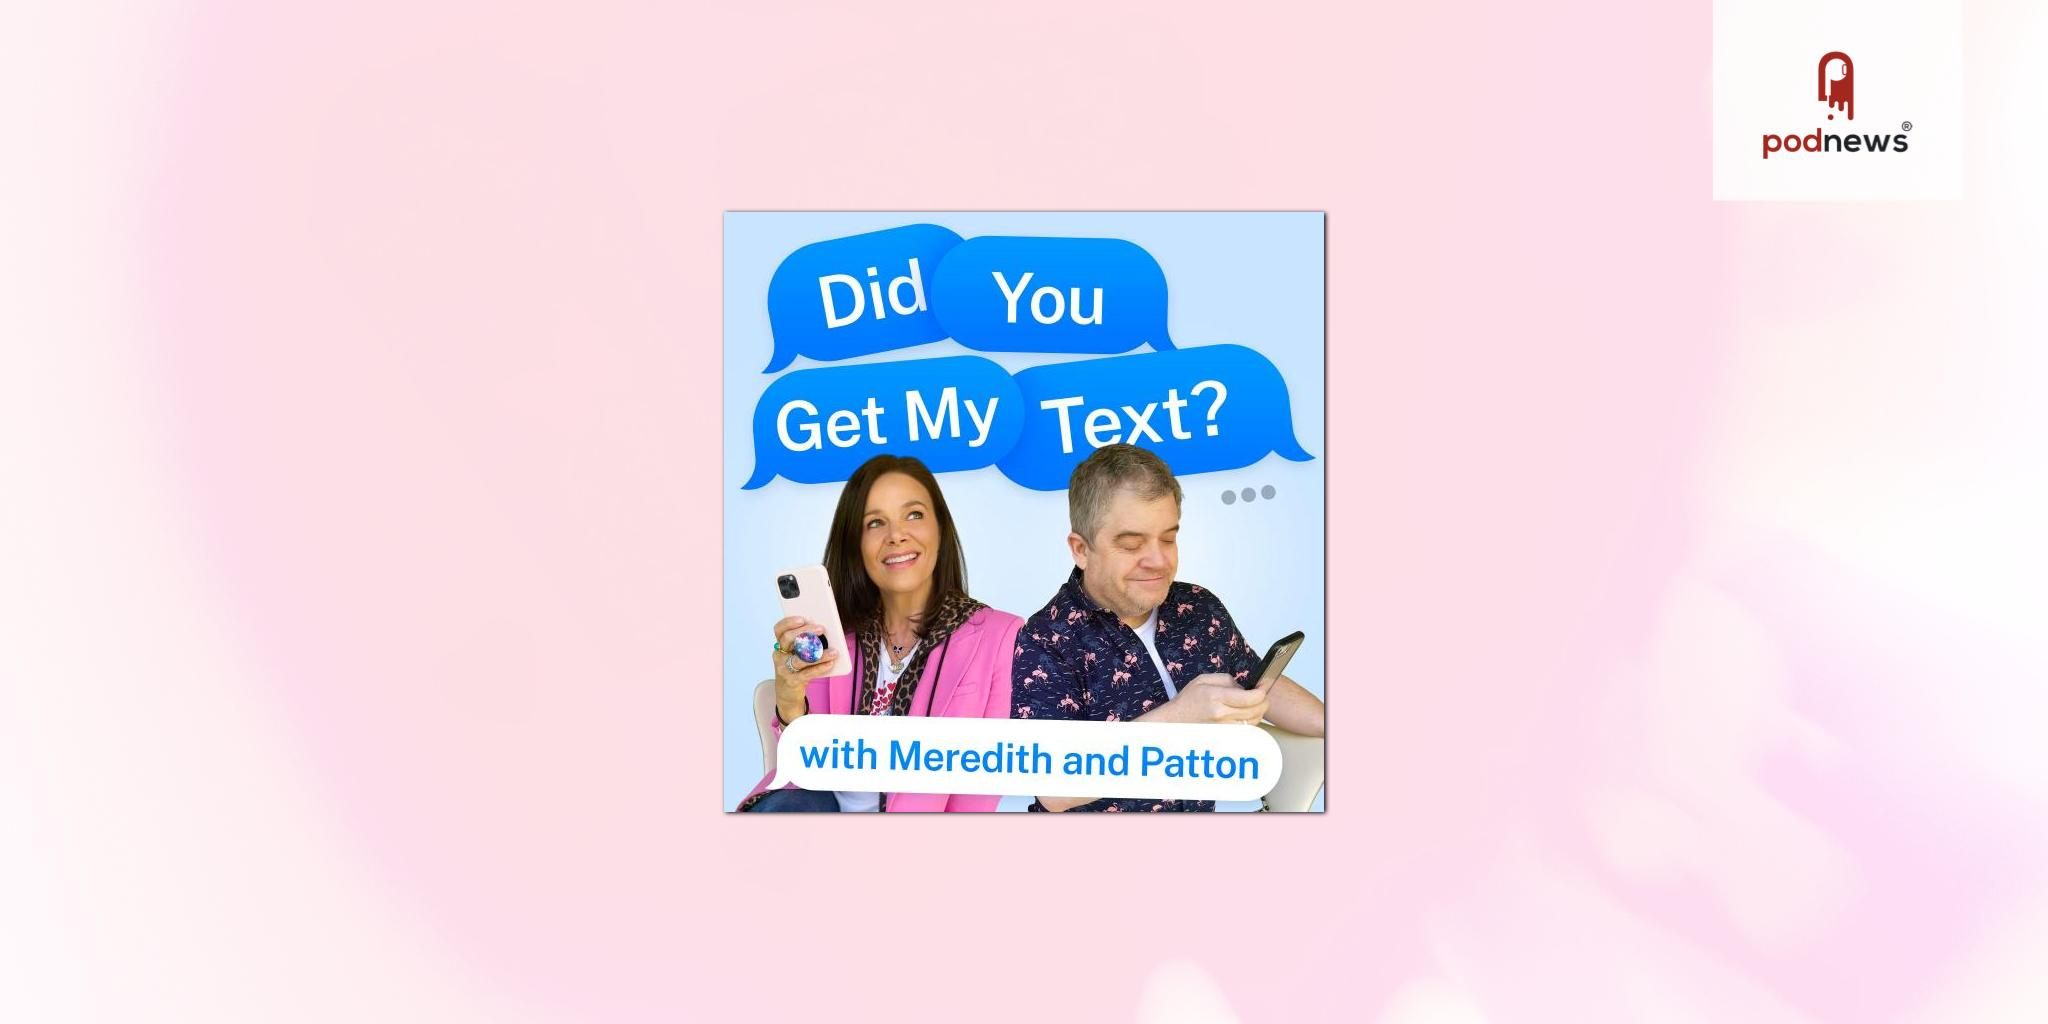 Patton Oswalt and Meredith Salenger bring you into their text messages with Did You Get My Text?